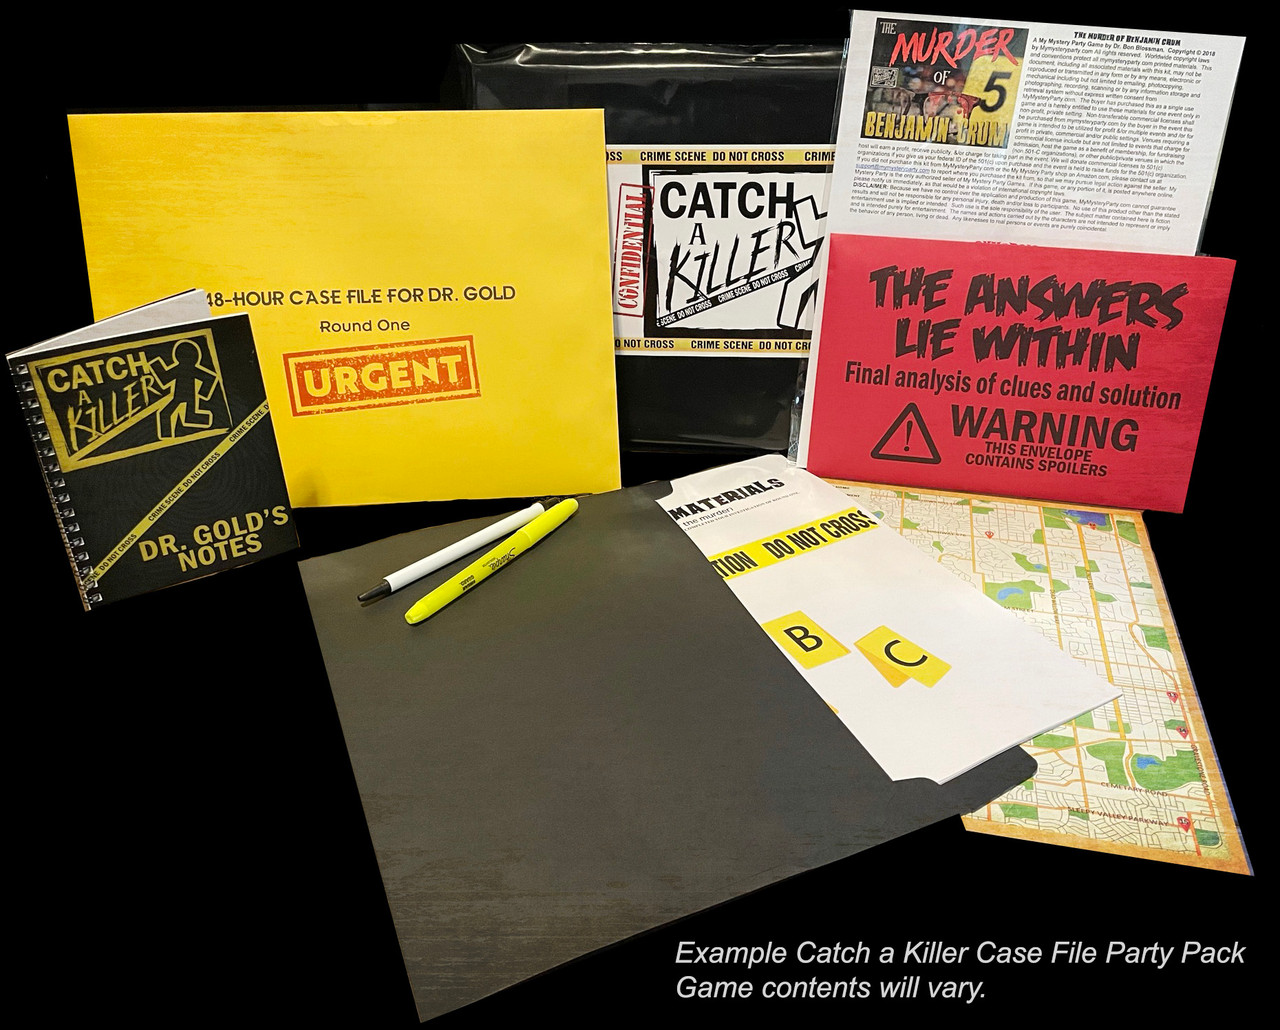 Example Catch a Killer Case file party pack.